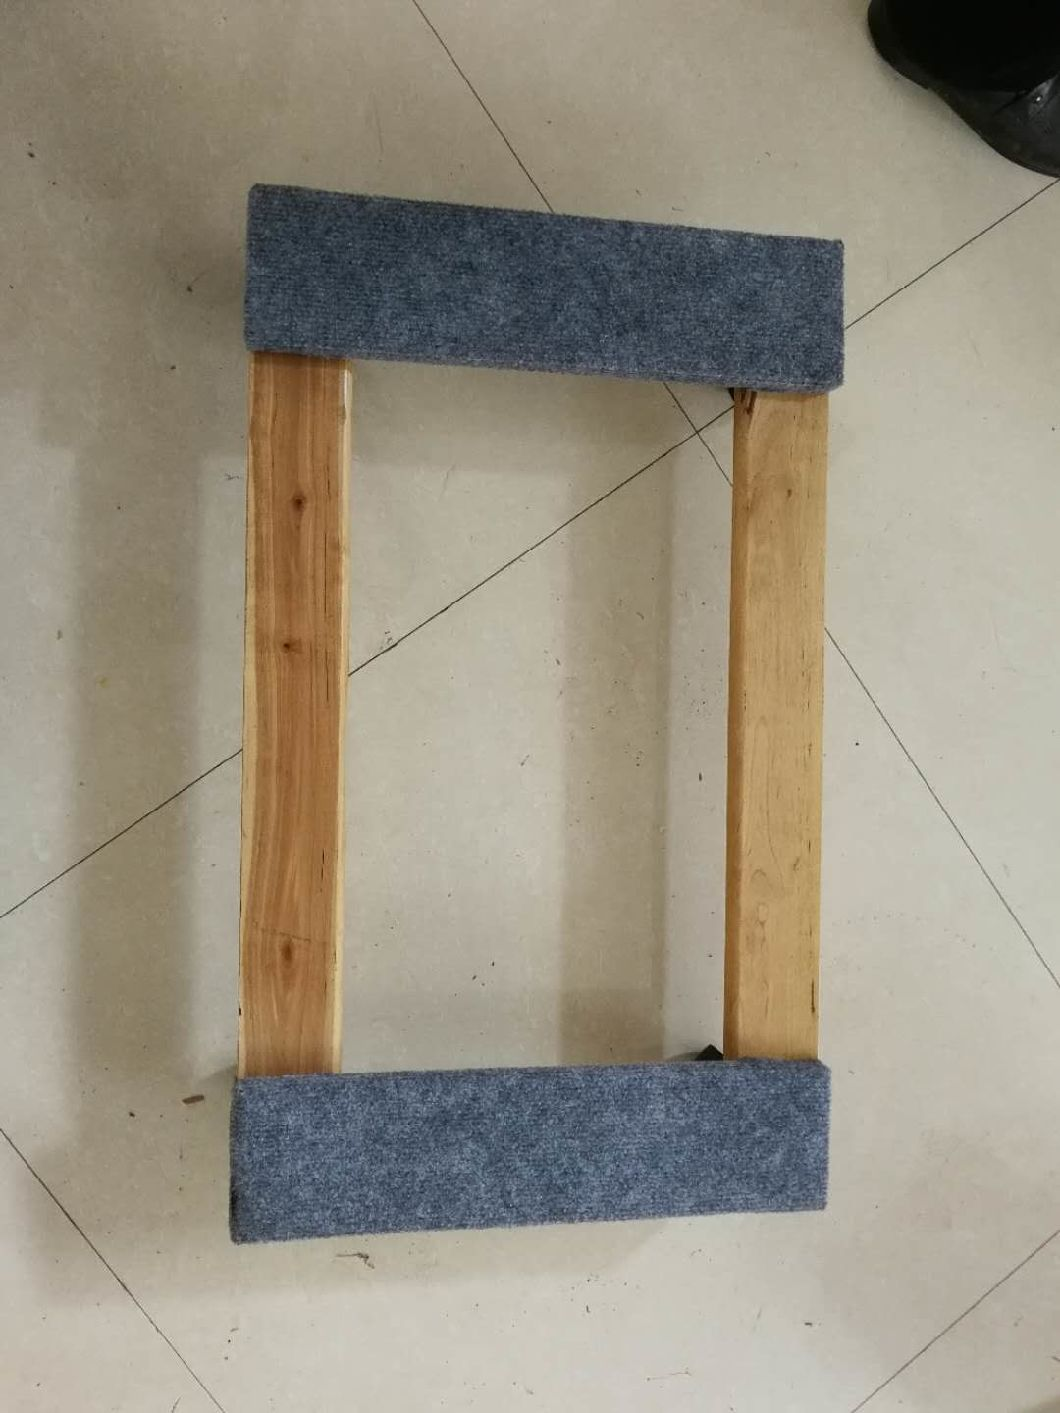 Hot Sale Wooden Platform Moving Dolly Trolley